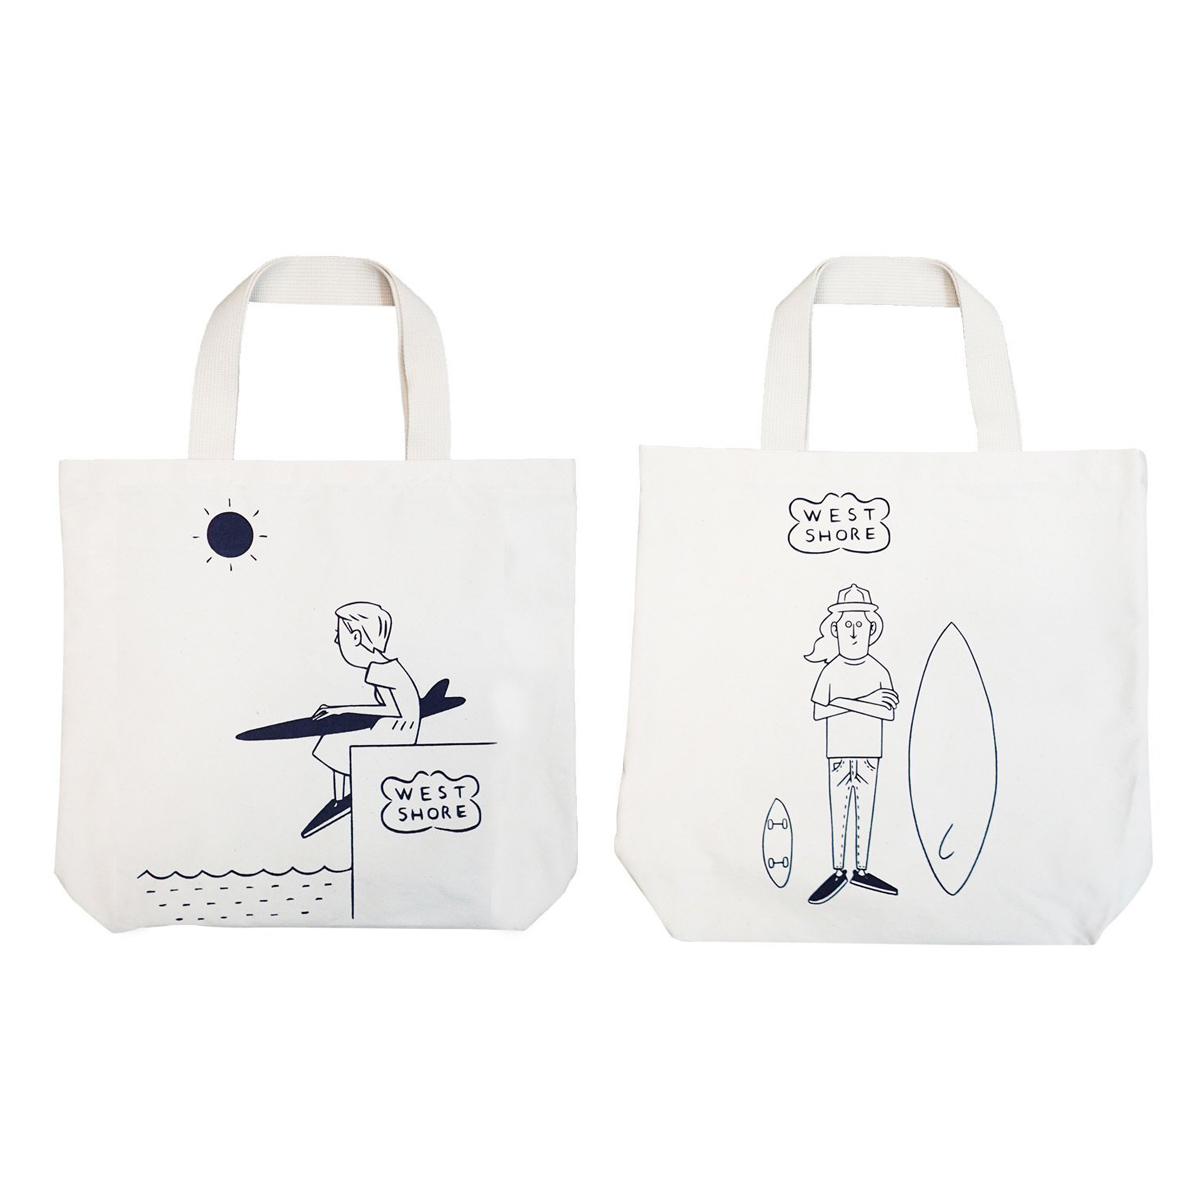 feel so easy/WEST SHORE X the HAMP works ザハンプワークス TOTE BAG Aタイプ